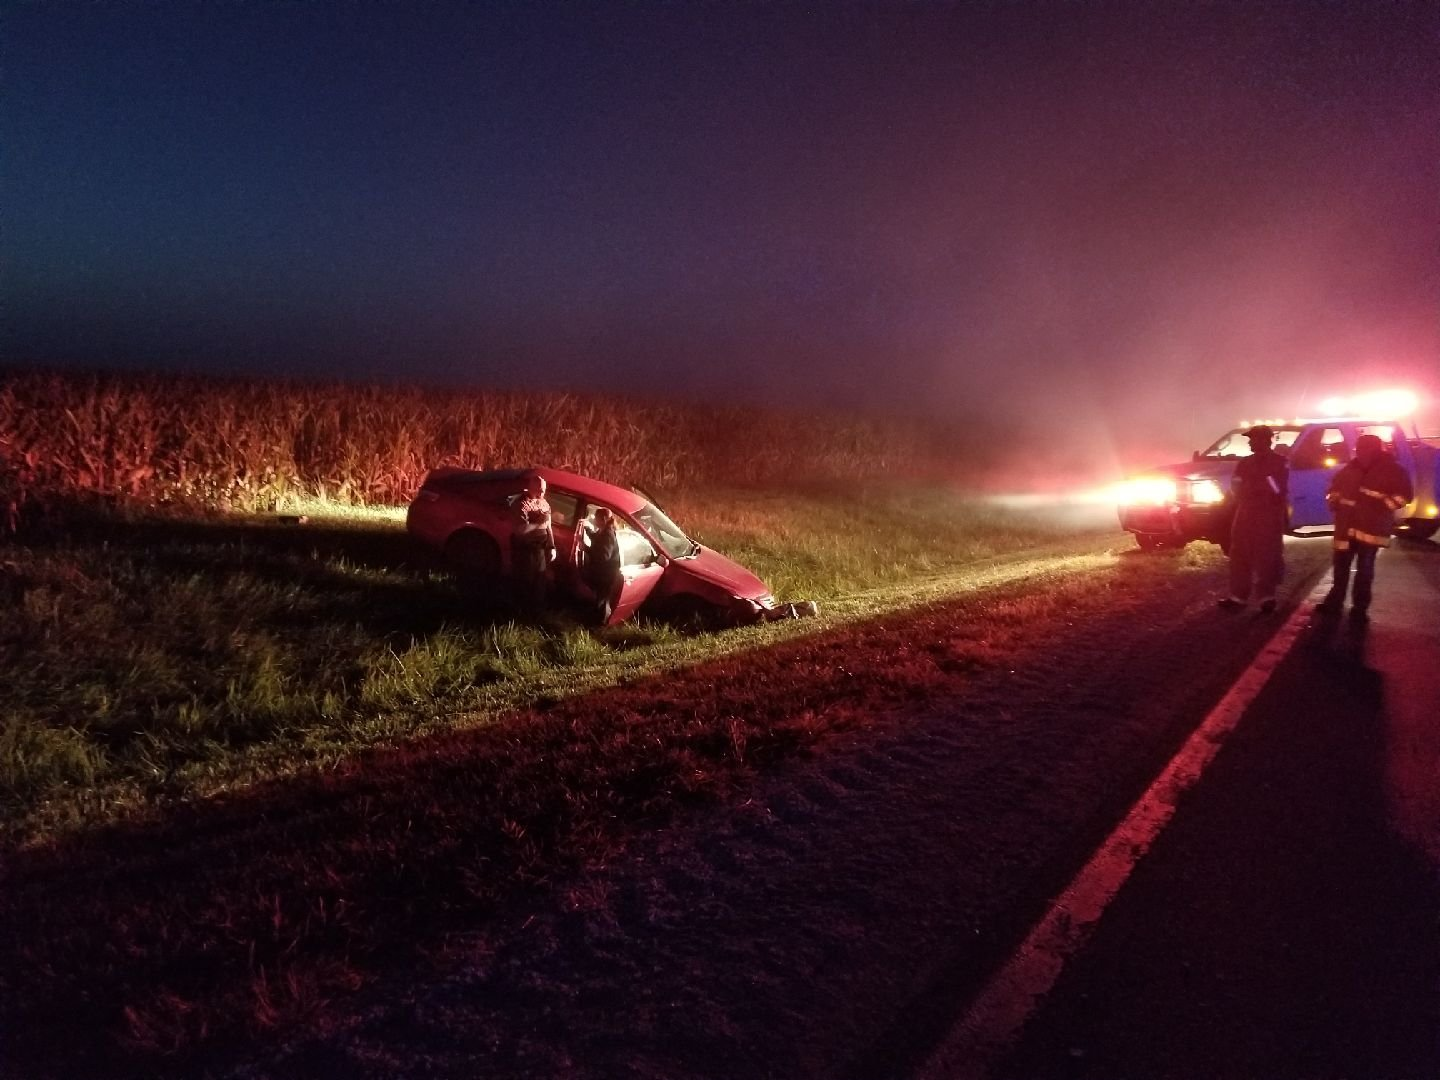 Submitted photo of the crash scene.